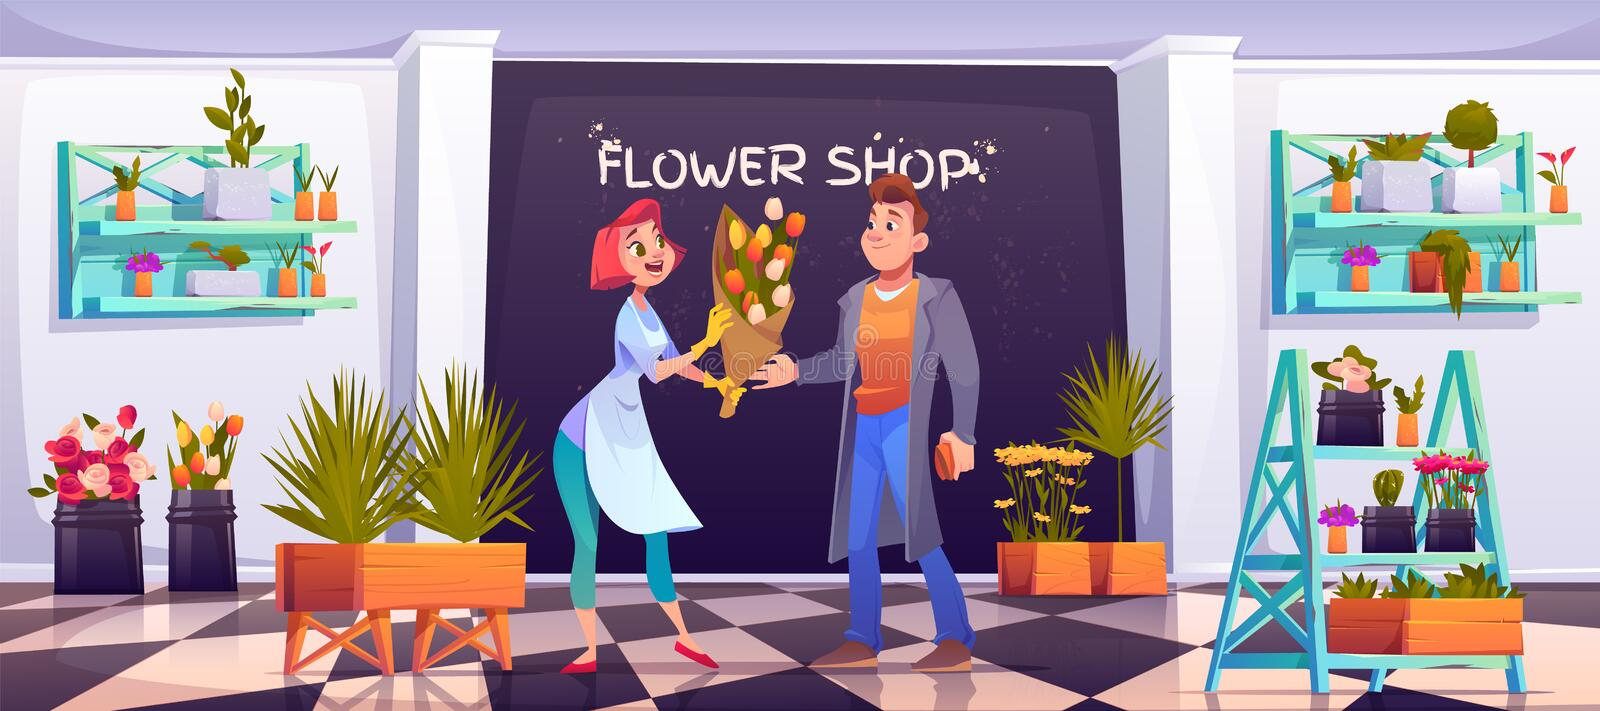 Man buying bouquet in flower shop, floristic store. Man buying bouquet in flower shop, saleswoman and customer in floristic store with potted plants on shelves stock illustration